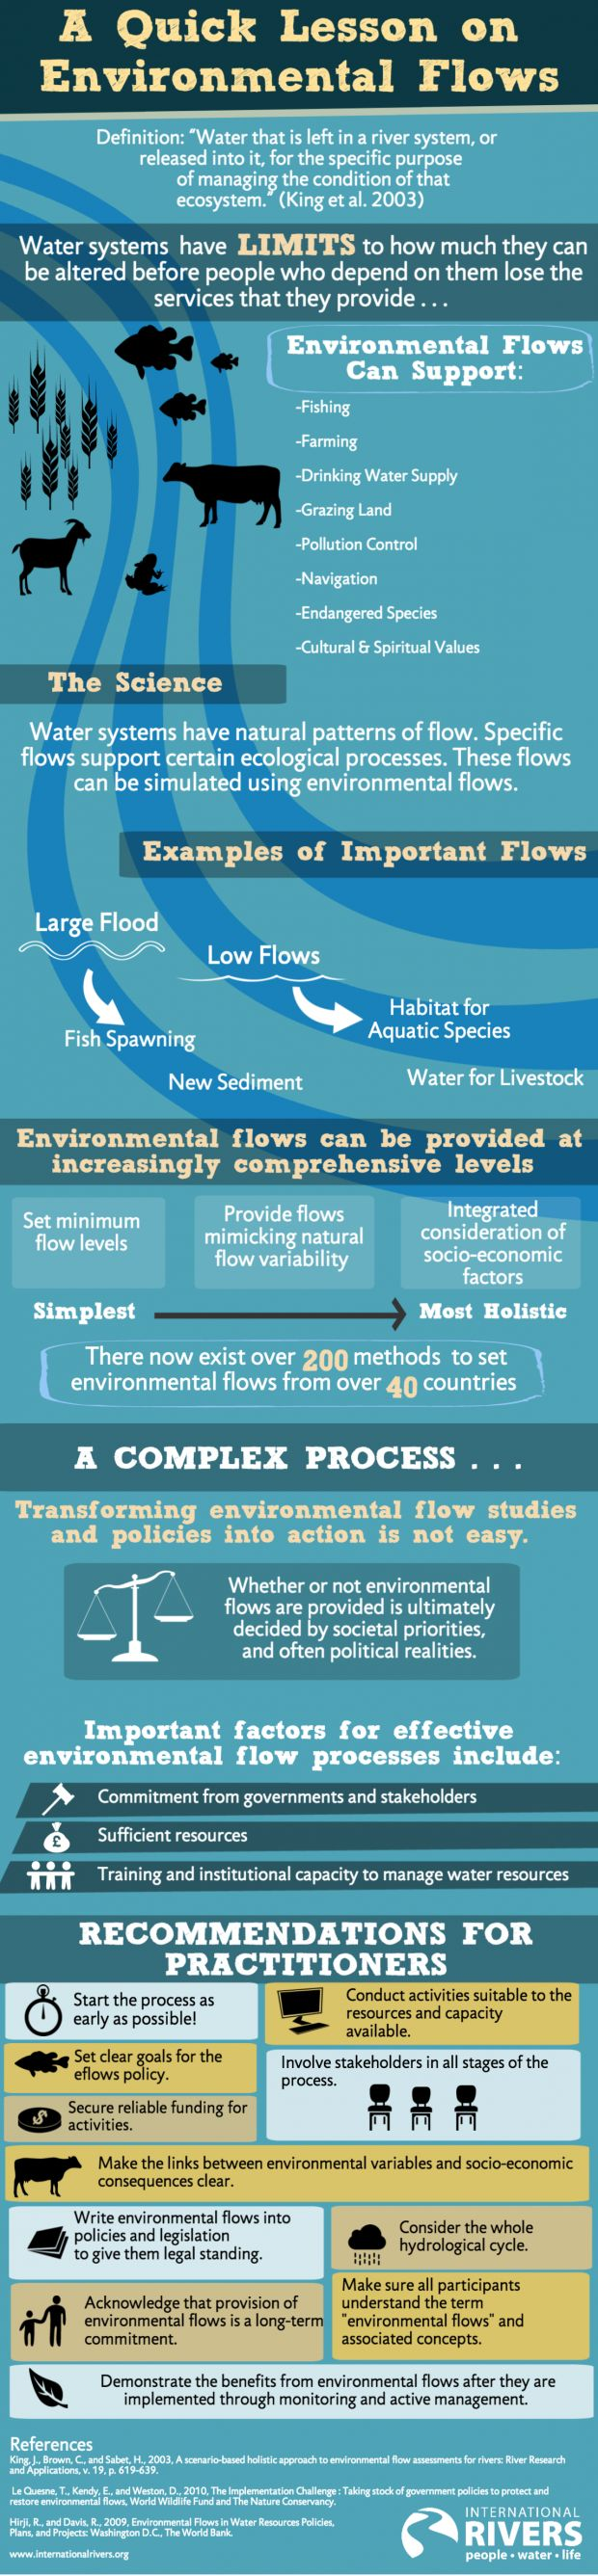 "When a river has been dammed, one of the most obvious changes is the disruption to the amount and timing of its flow. ""Environmental flows"" is a system for managing the quantity, timing, and quality of water flows below a dam, with the goal of sustaining freshwater and estuarine ecosystems and the human livelihoods that depend on them."